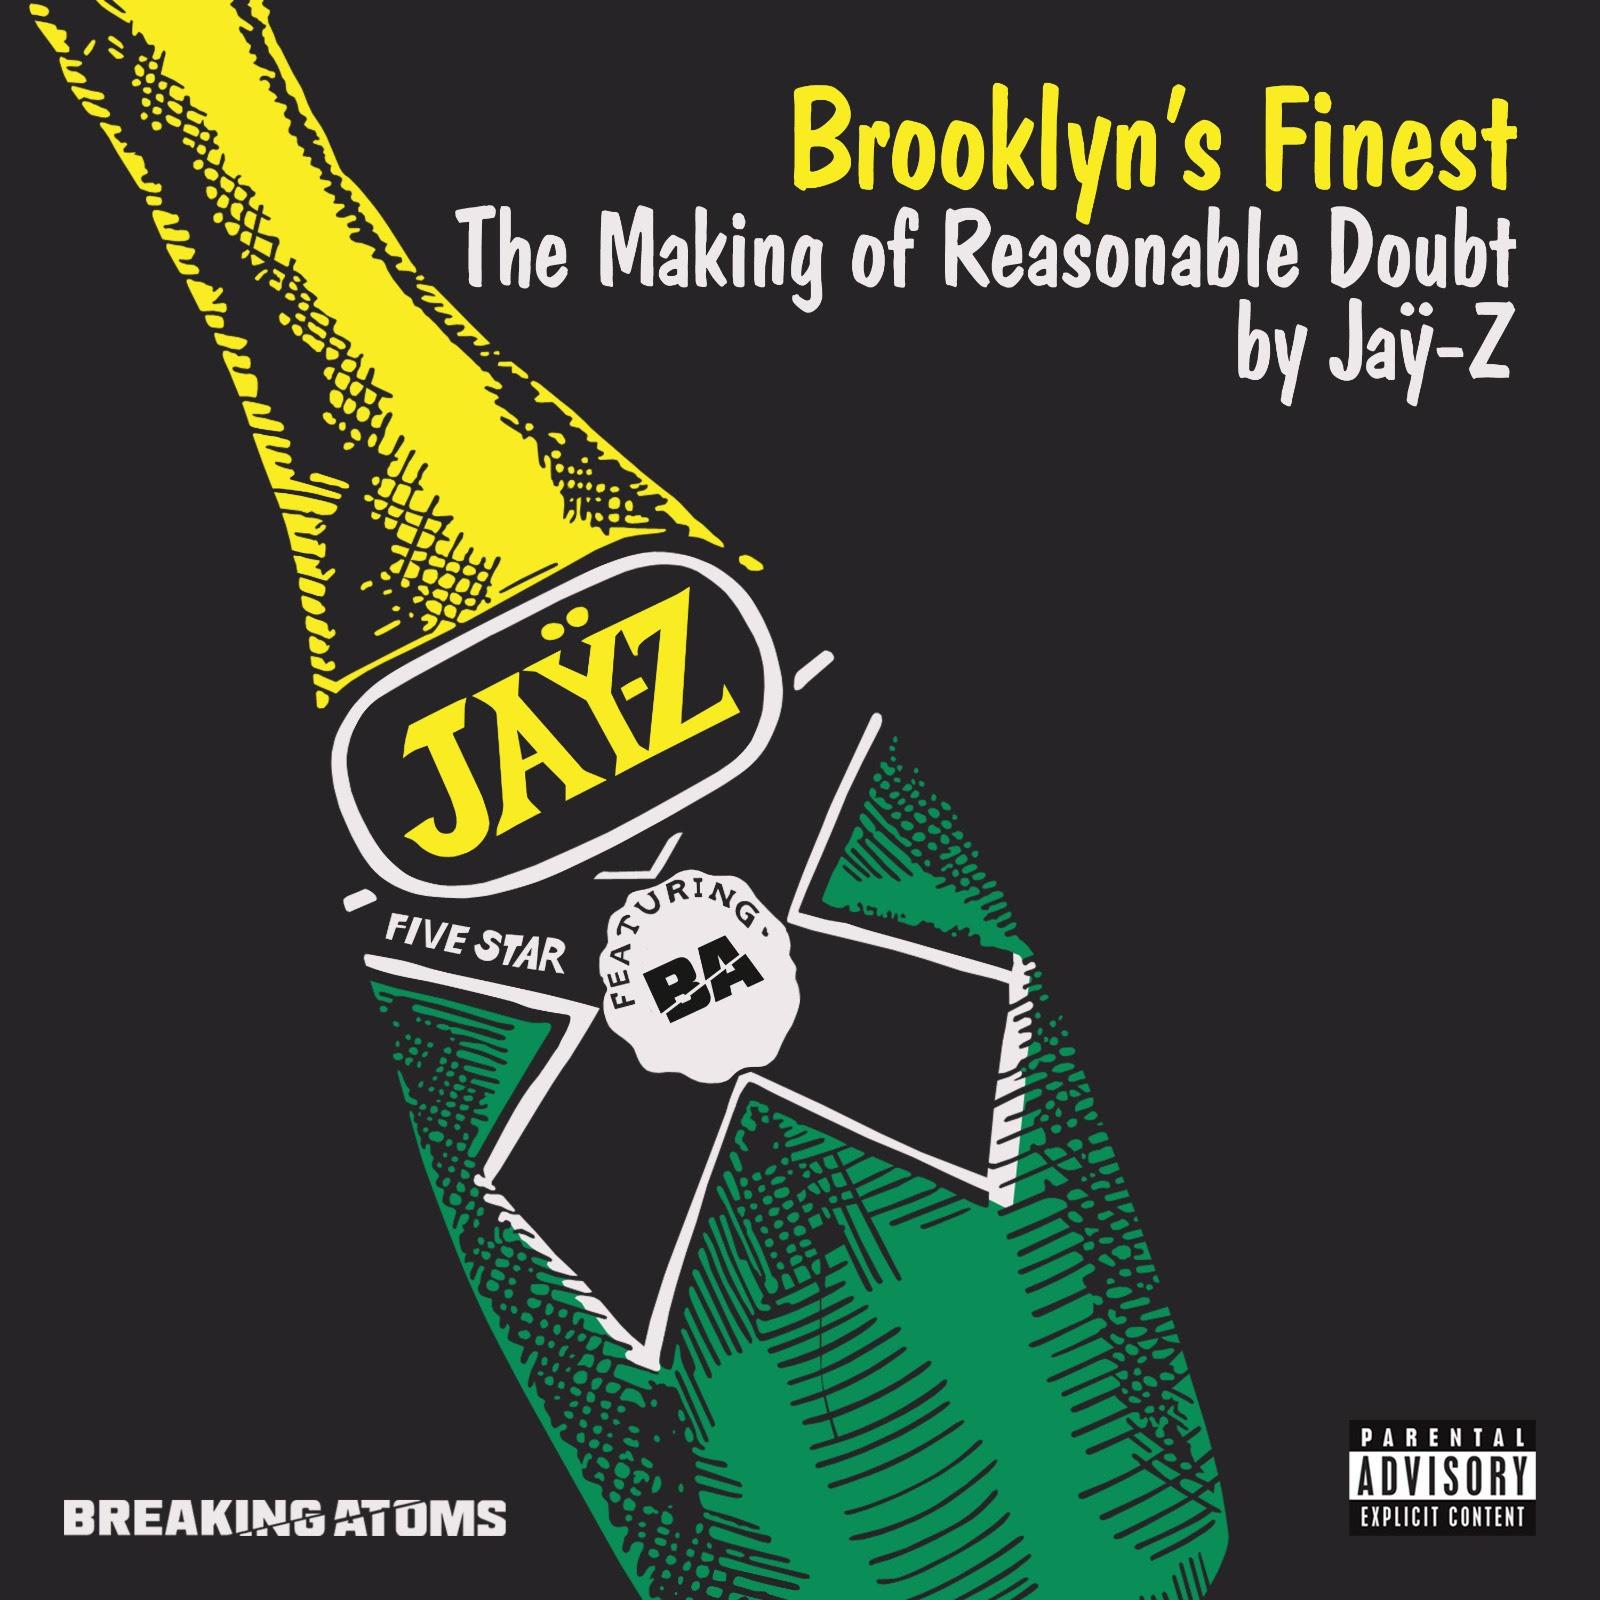 Episode 1: Coming of Age | Brooklyn's Finest: The Making of Reasonable Doubt by Jay-Z